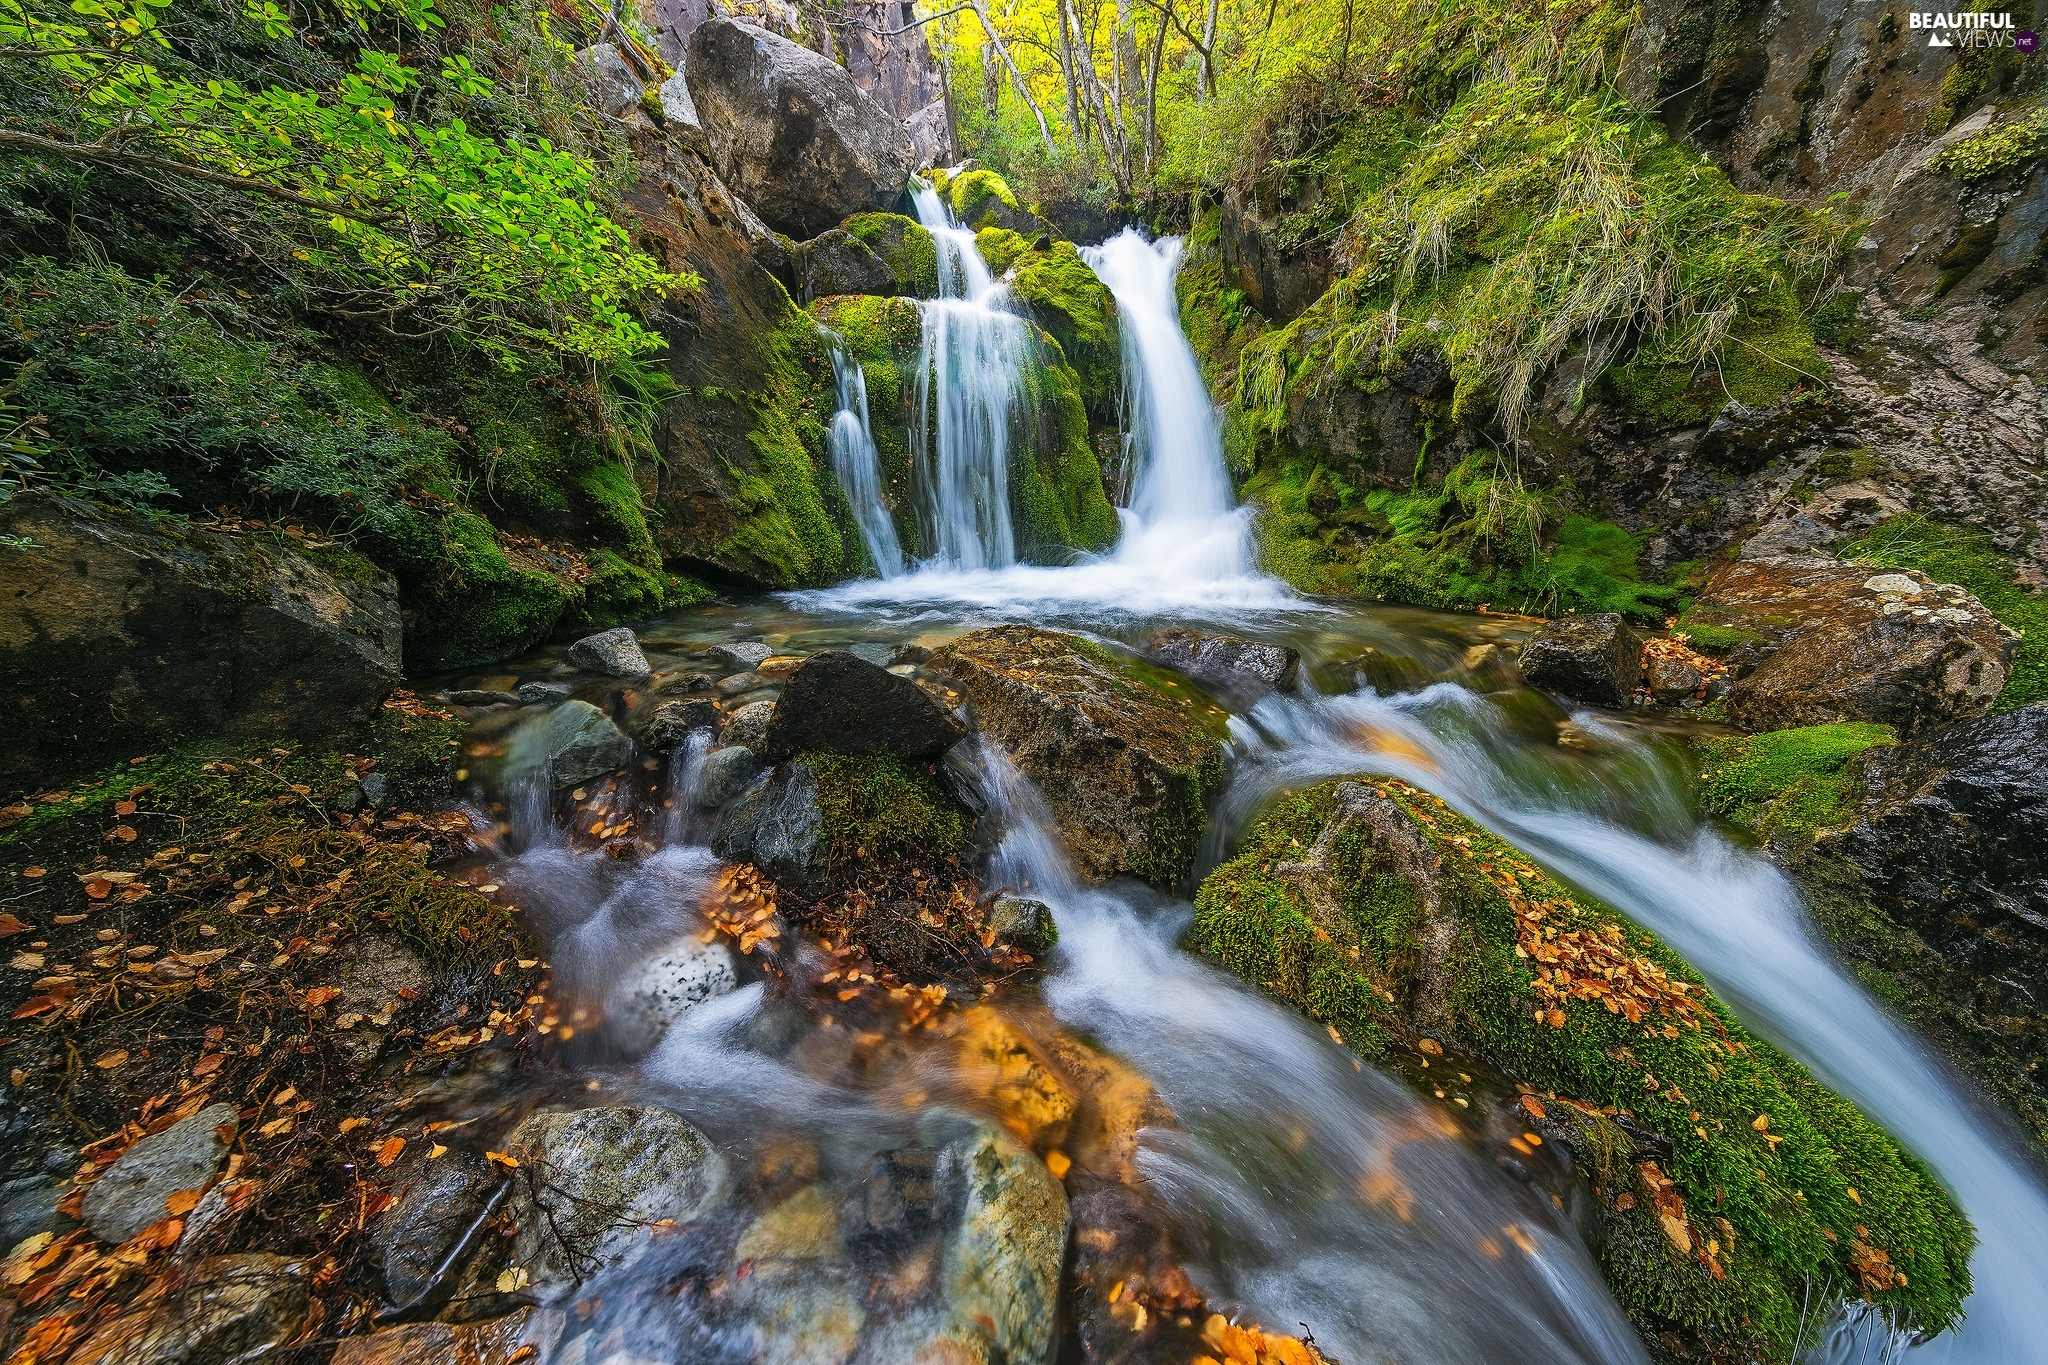 mossy, waterfall, VEGETATION, River, forest, rocks, Leaf